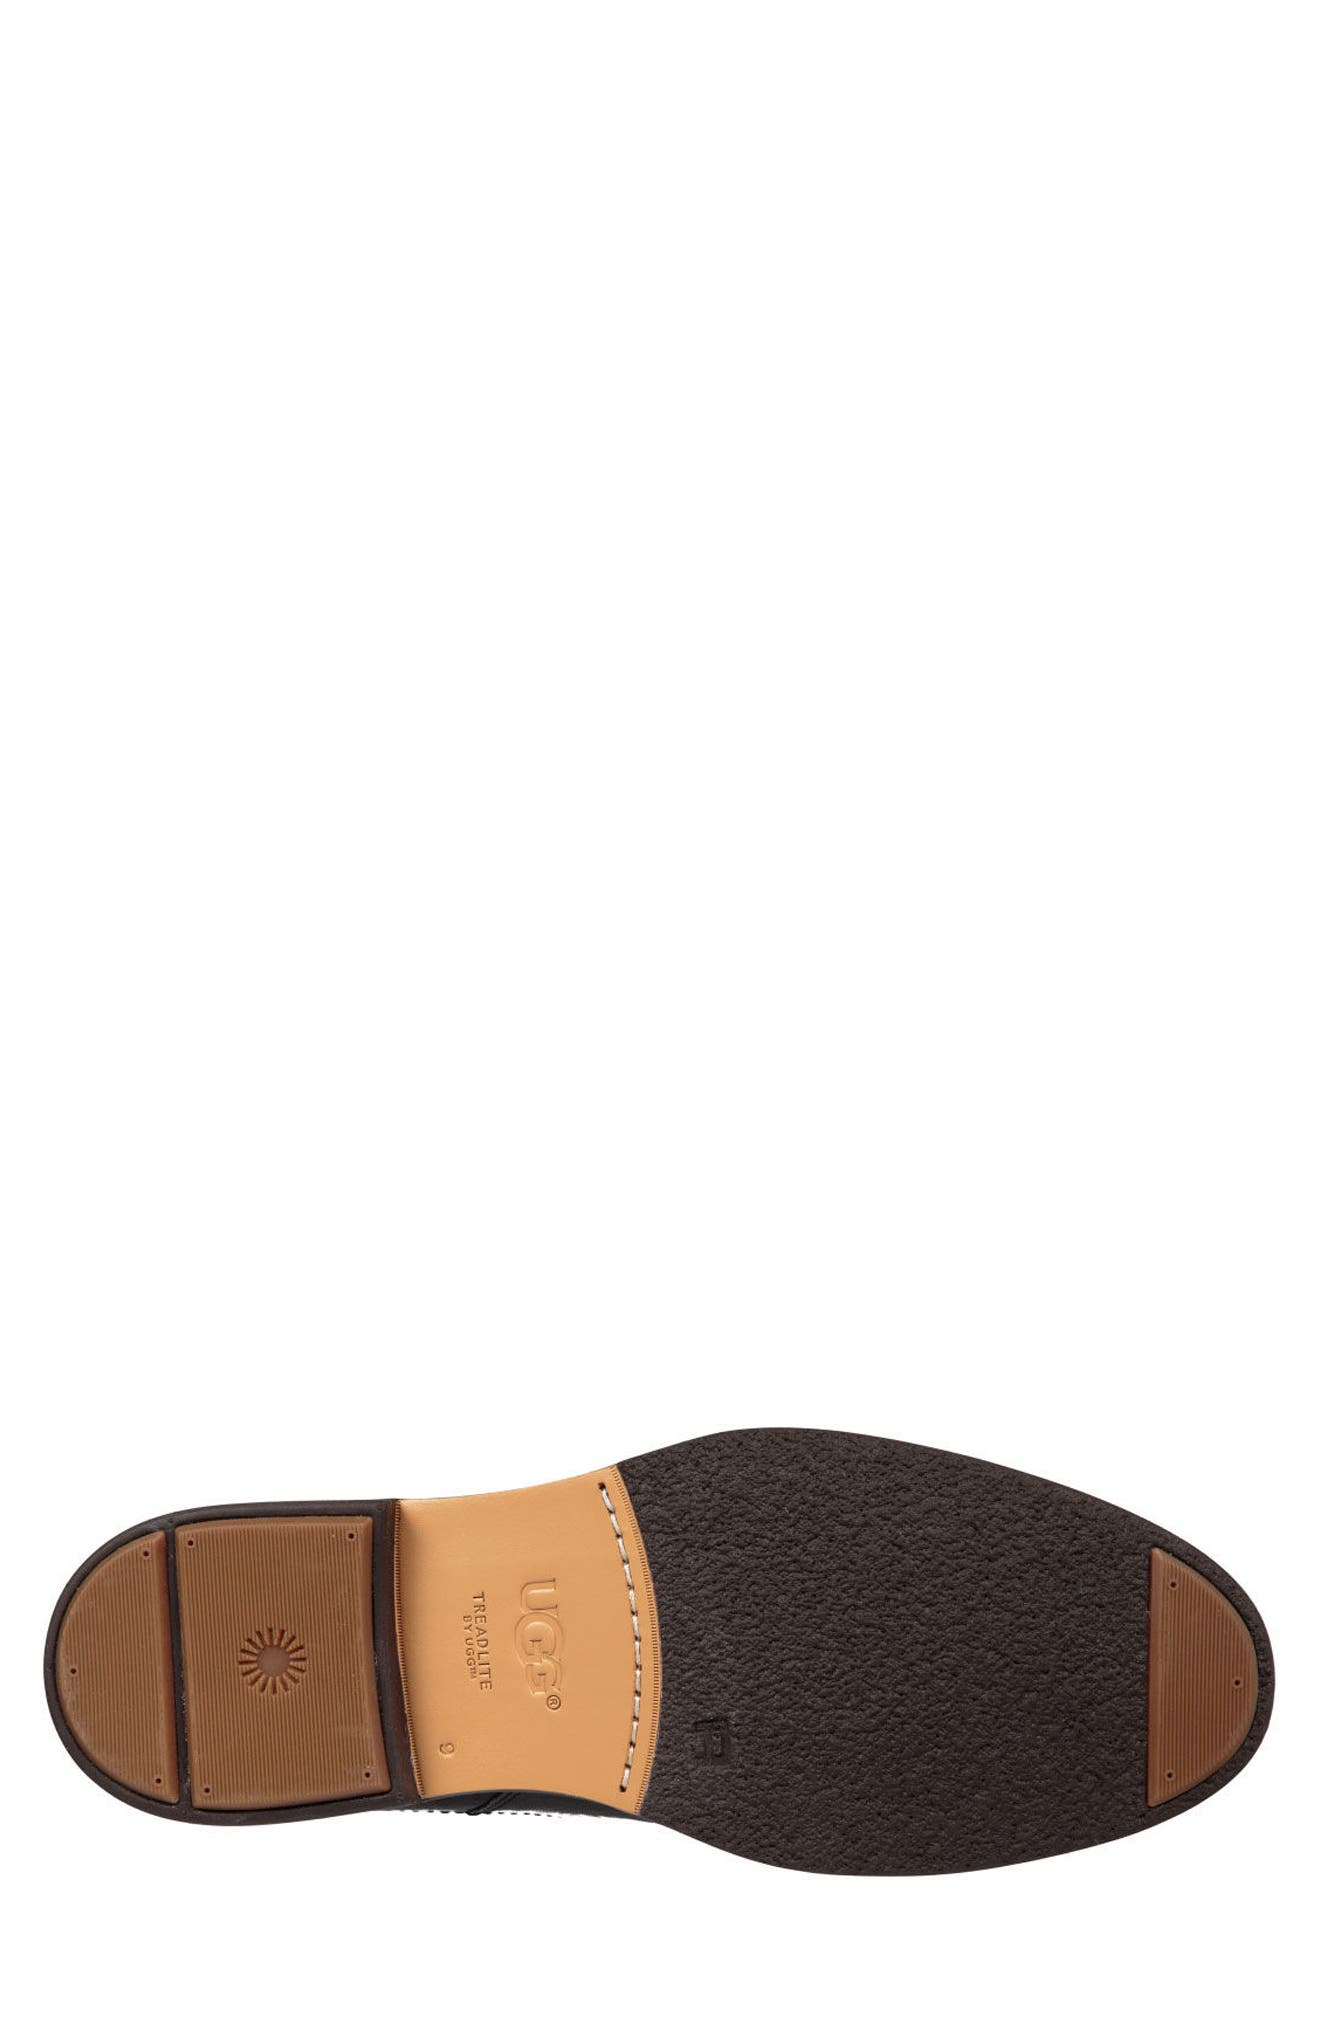 UGG<SUP>®</SUP>, Baldvin Chelsea Boot, Alternate thumbnail 5, color, BLACK LEATHER/SUEDE